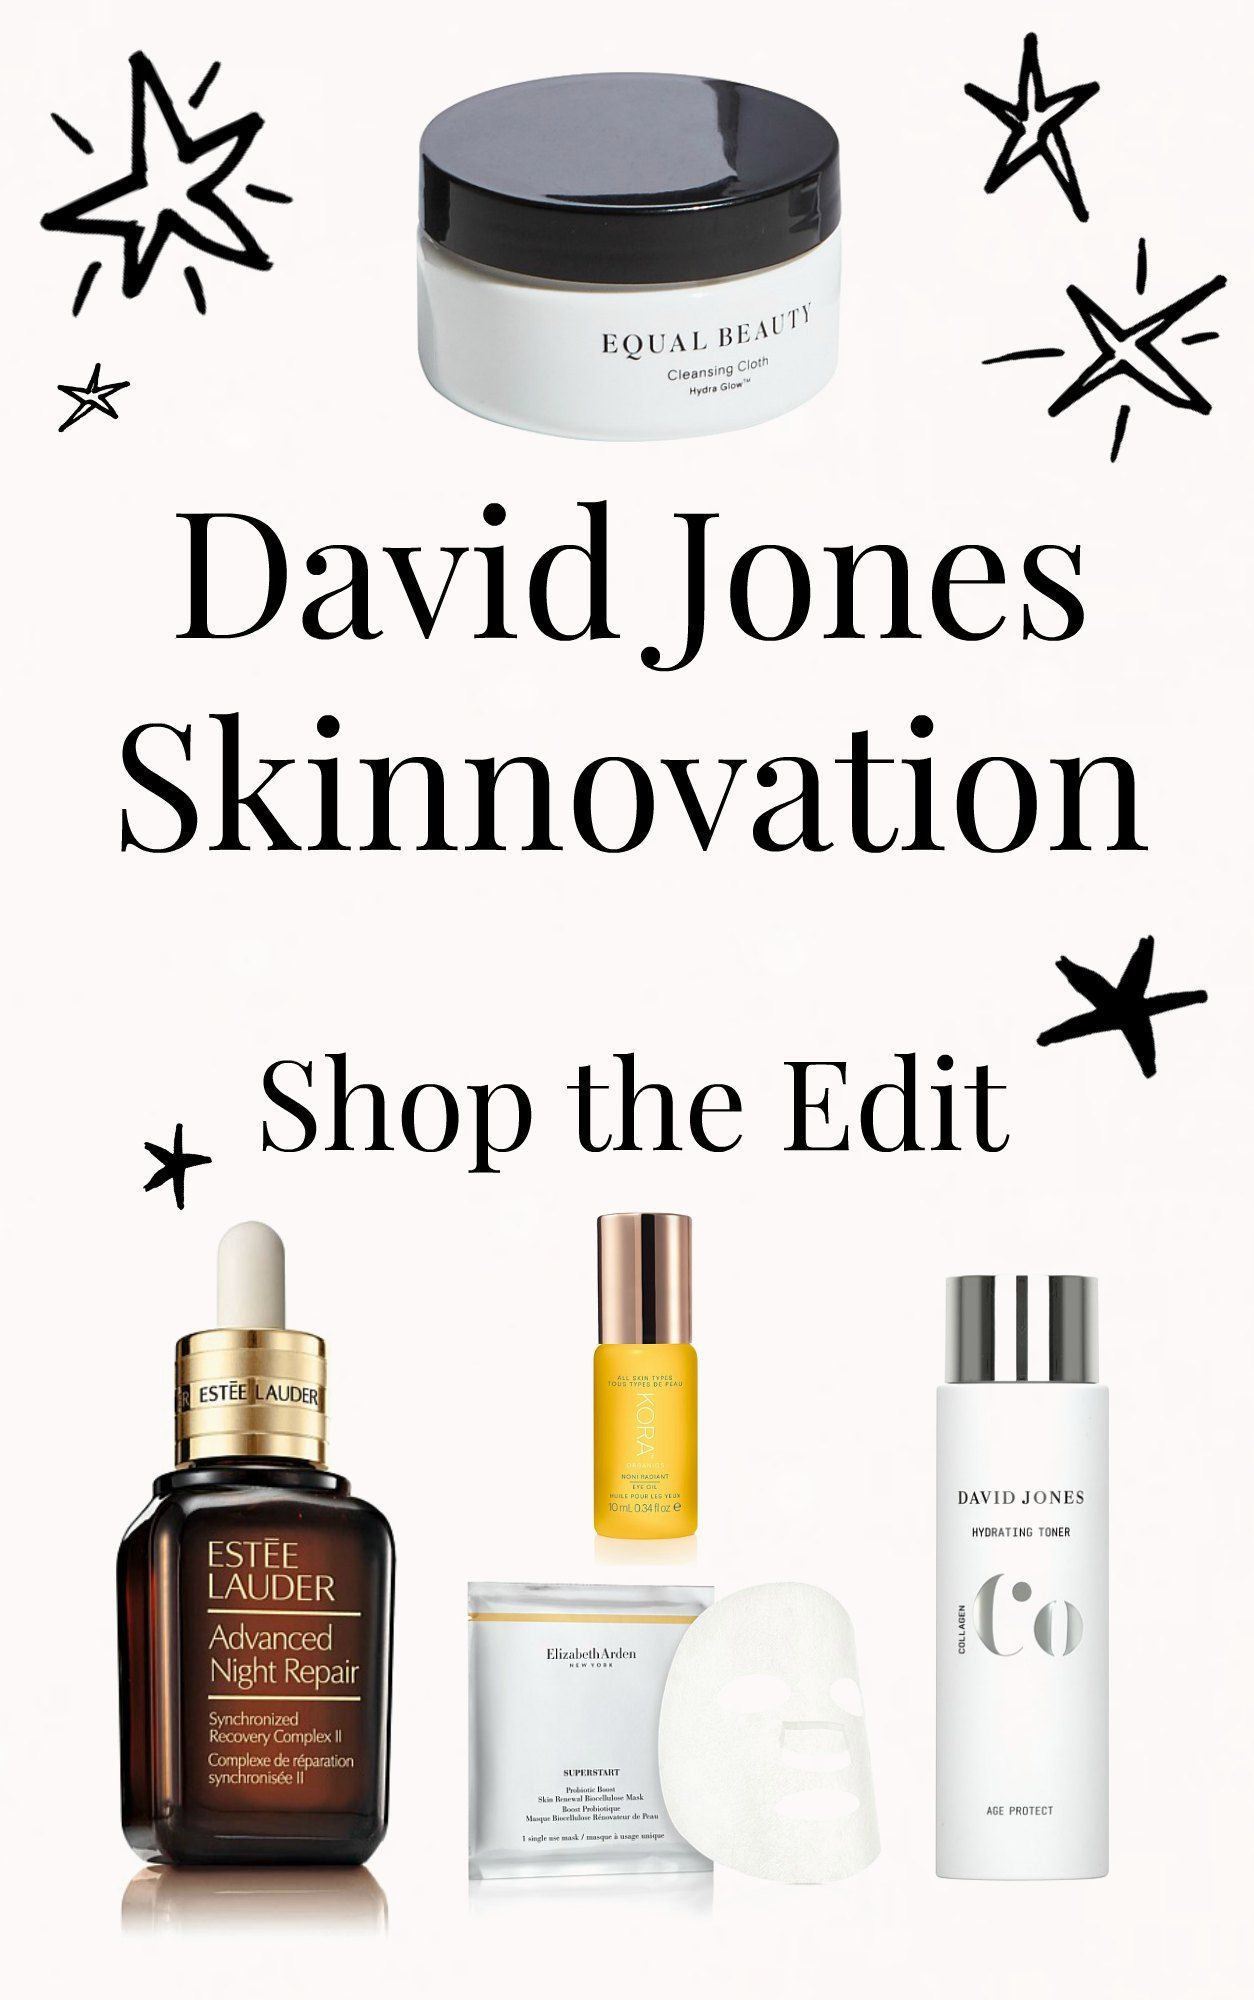 David Jones Skinnovation